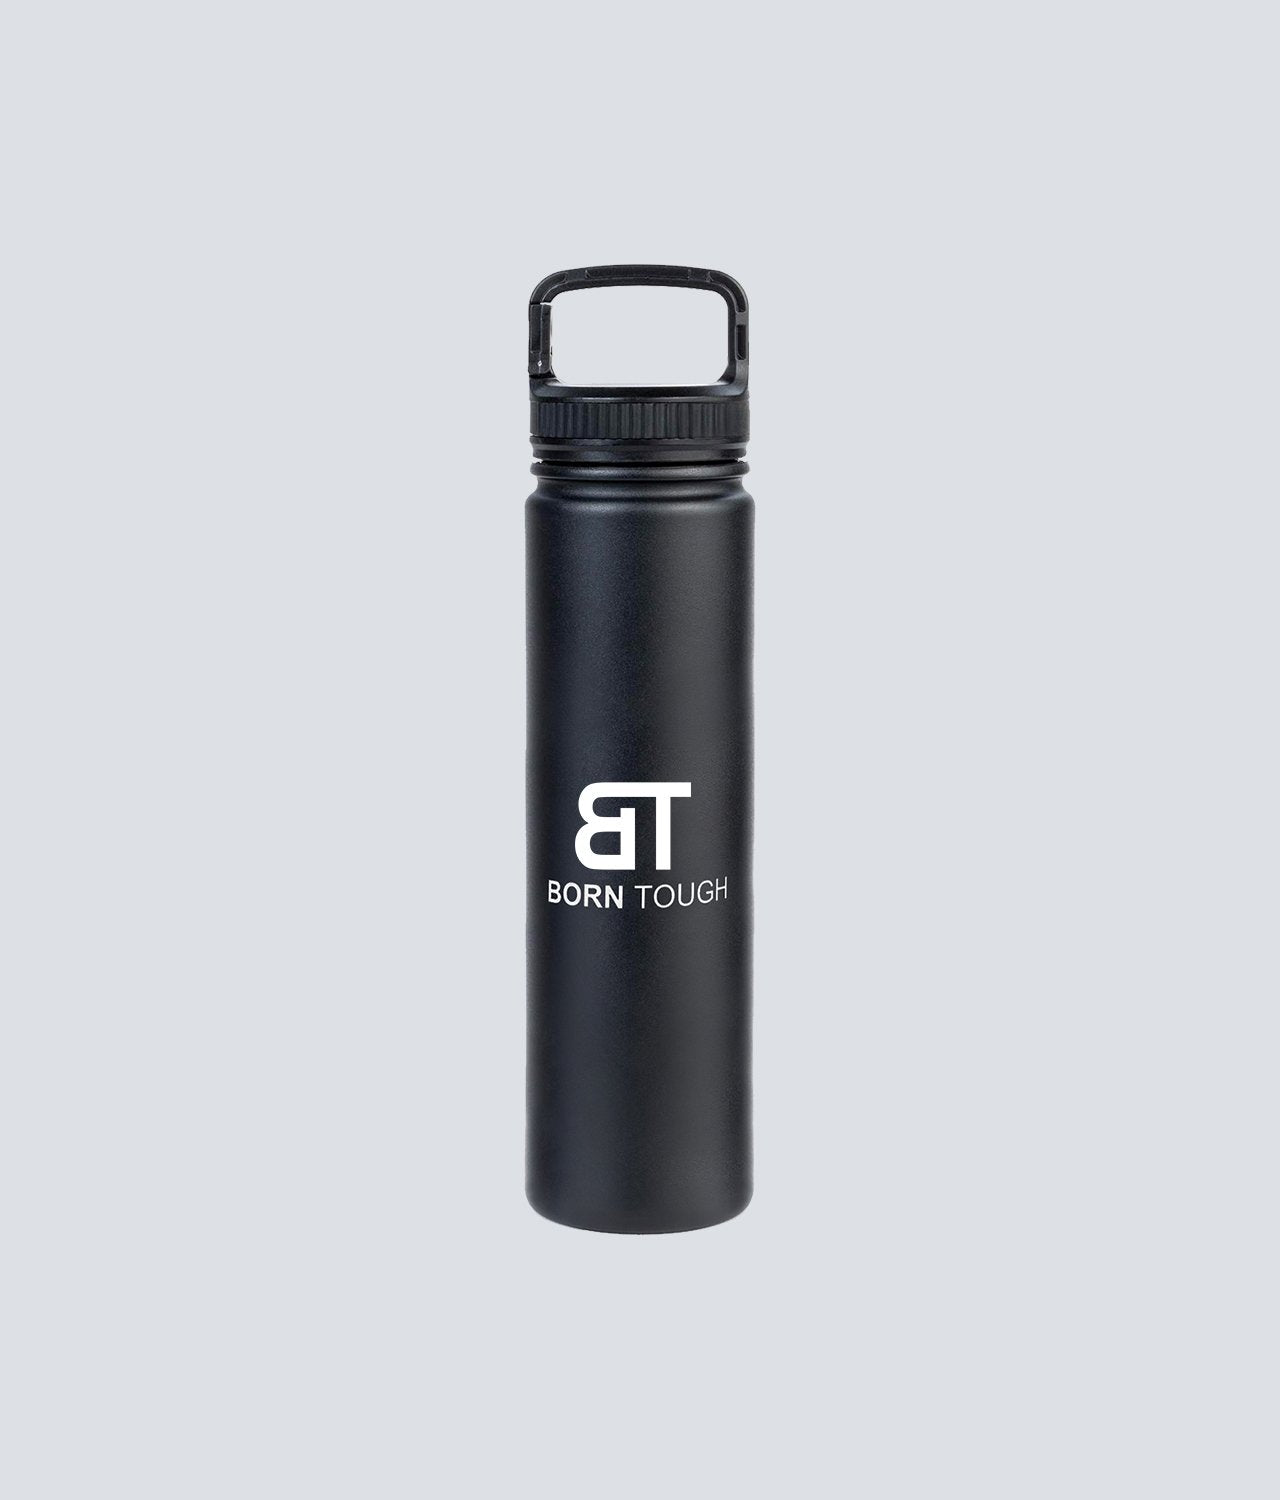 Born Tough United Kingdom Stainless Steel Insulated Water Bottle